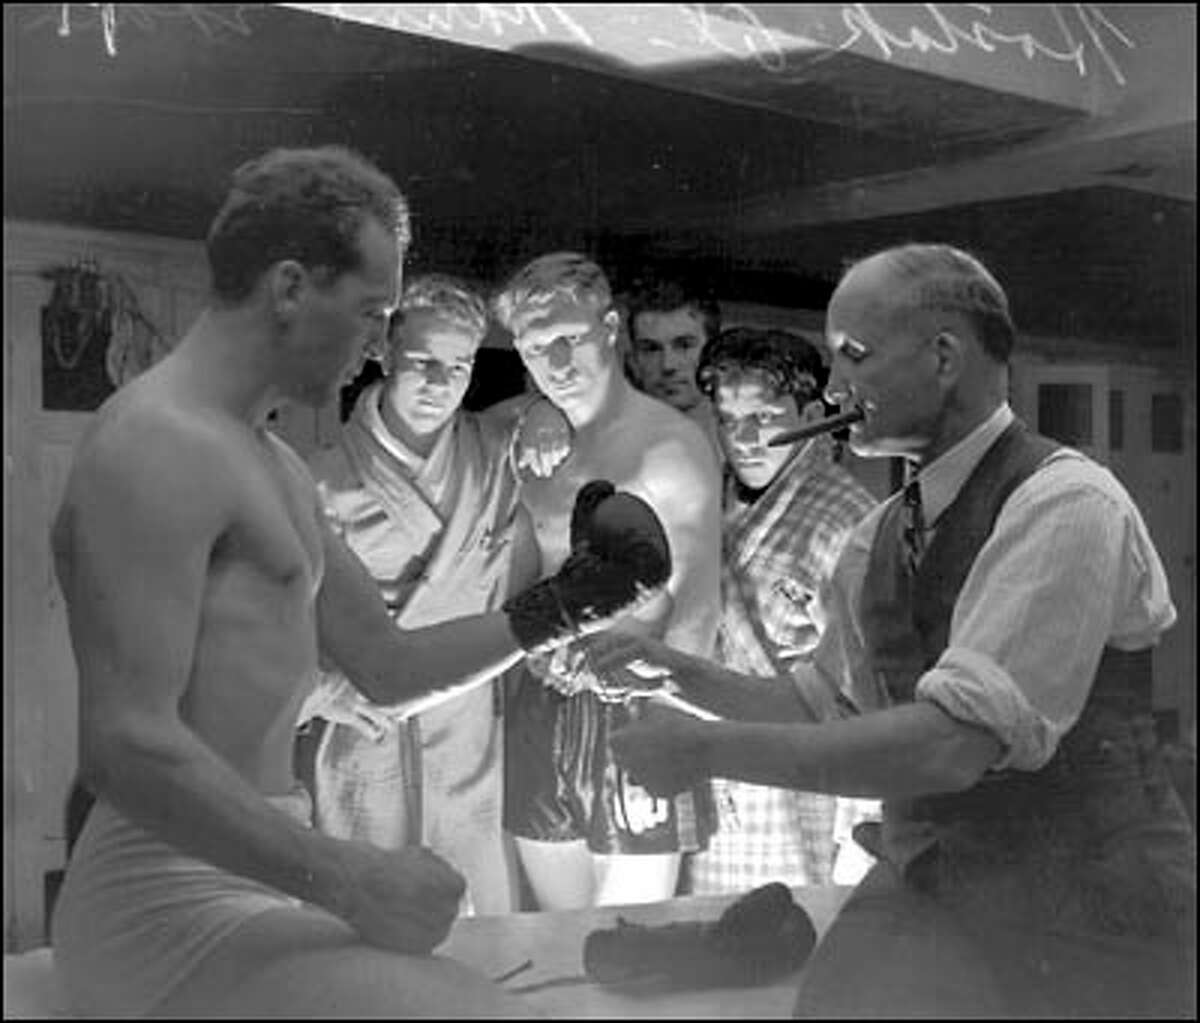 """Cigar-chomping trainer Eddie Marino laces up a glove on middleweight titleholder Al Hostak for his Sept. 18, 1938 bout with Young Stuhly at Seattle's Civic Auditorium. Frank """"Slim"""" Lynch lit the scene from below so that a ghostly light plays over the scene."""